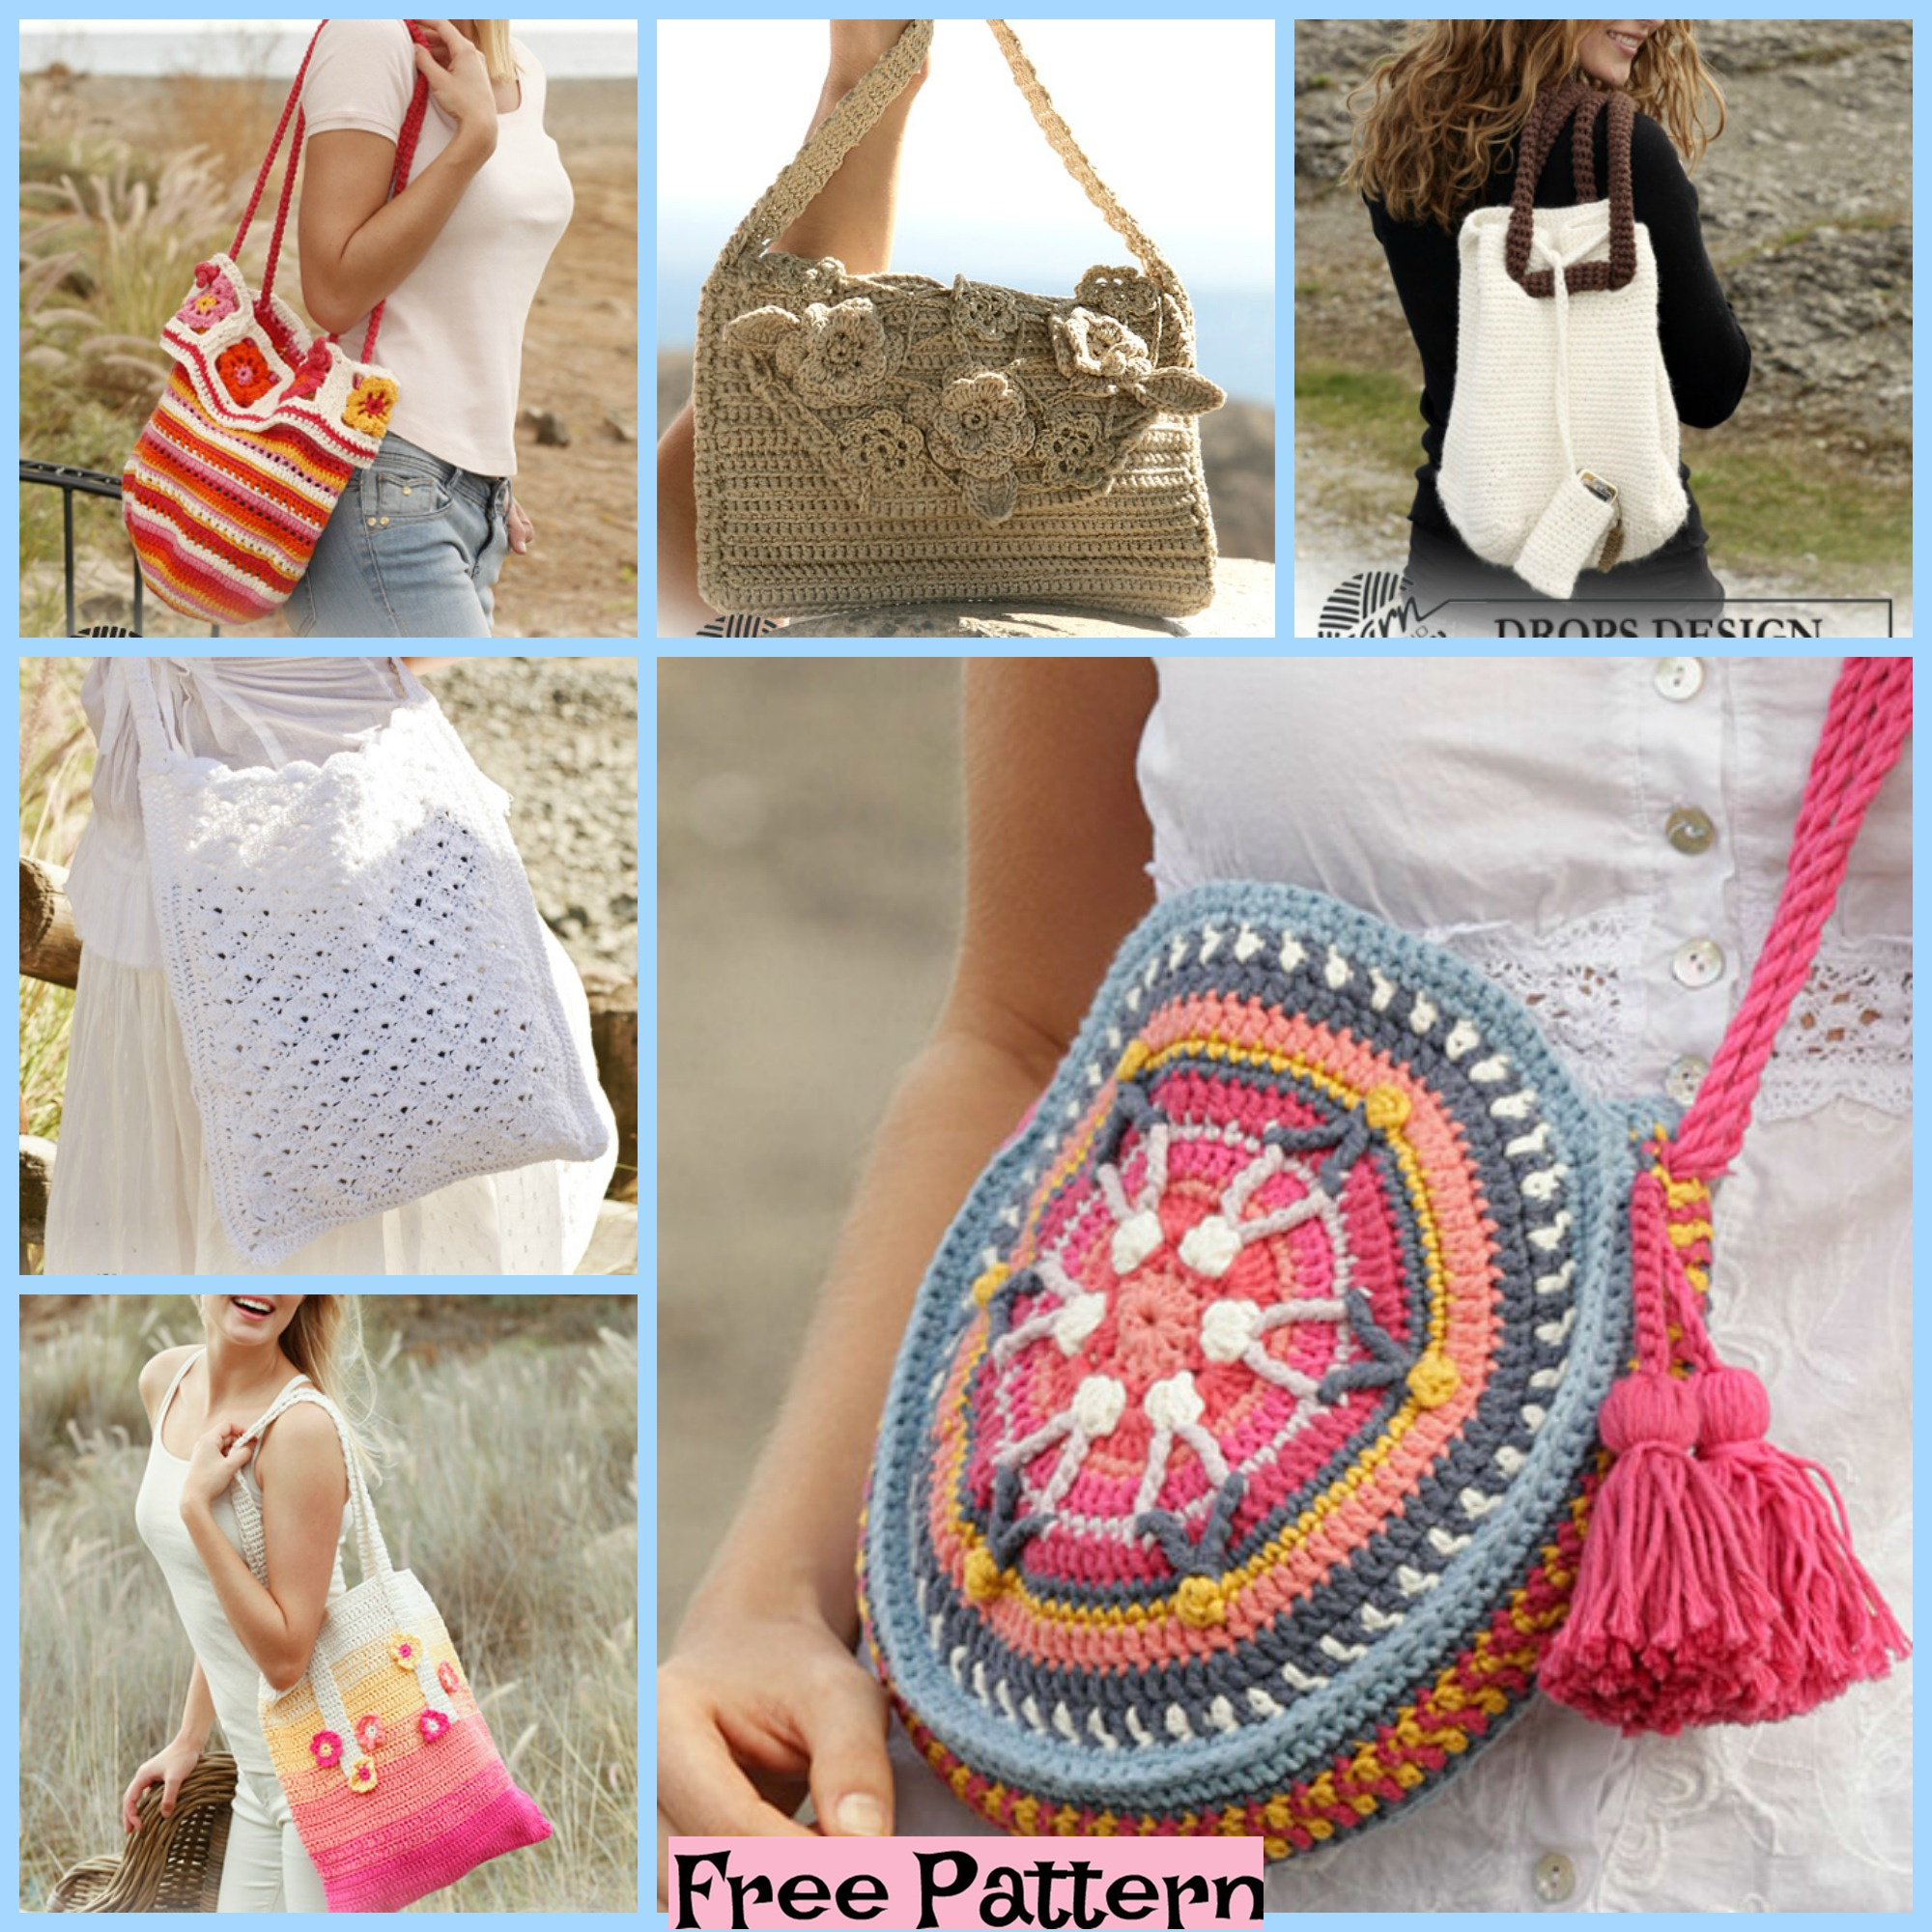 diy4ever- 8 Crochet Summer Bags - Free Patterns F